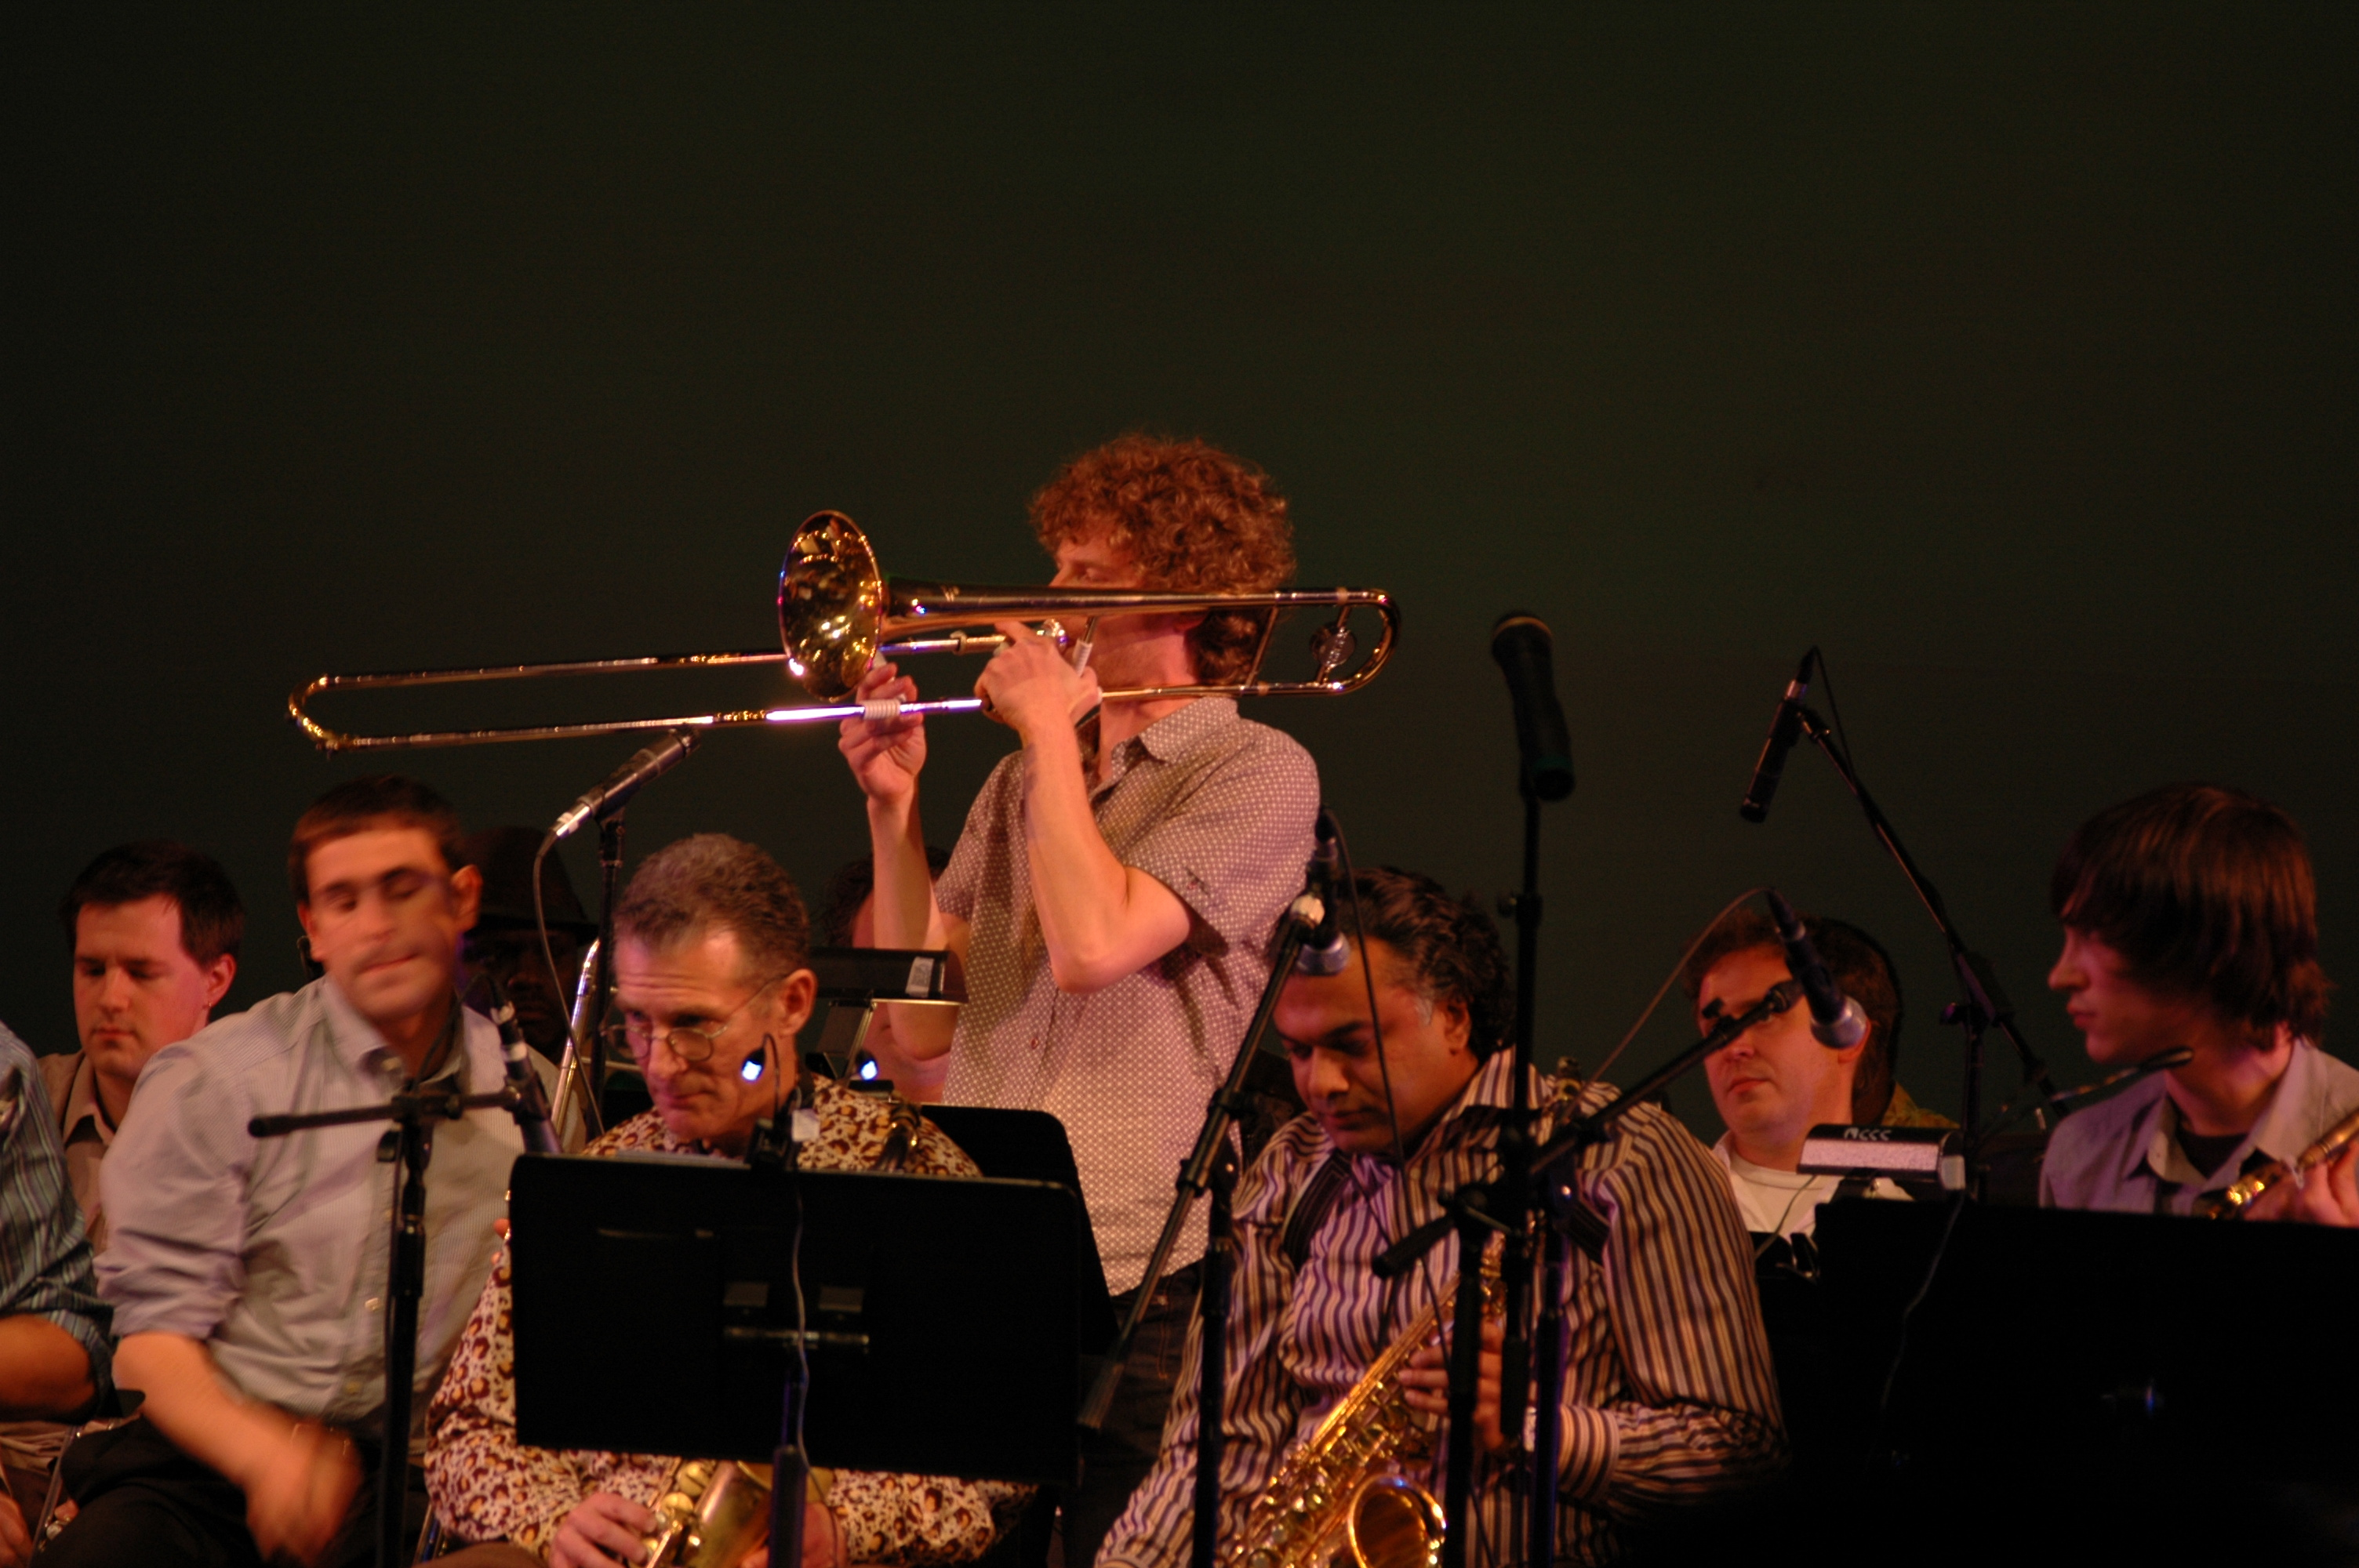 Concert at Montgromery County Community College